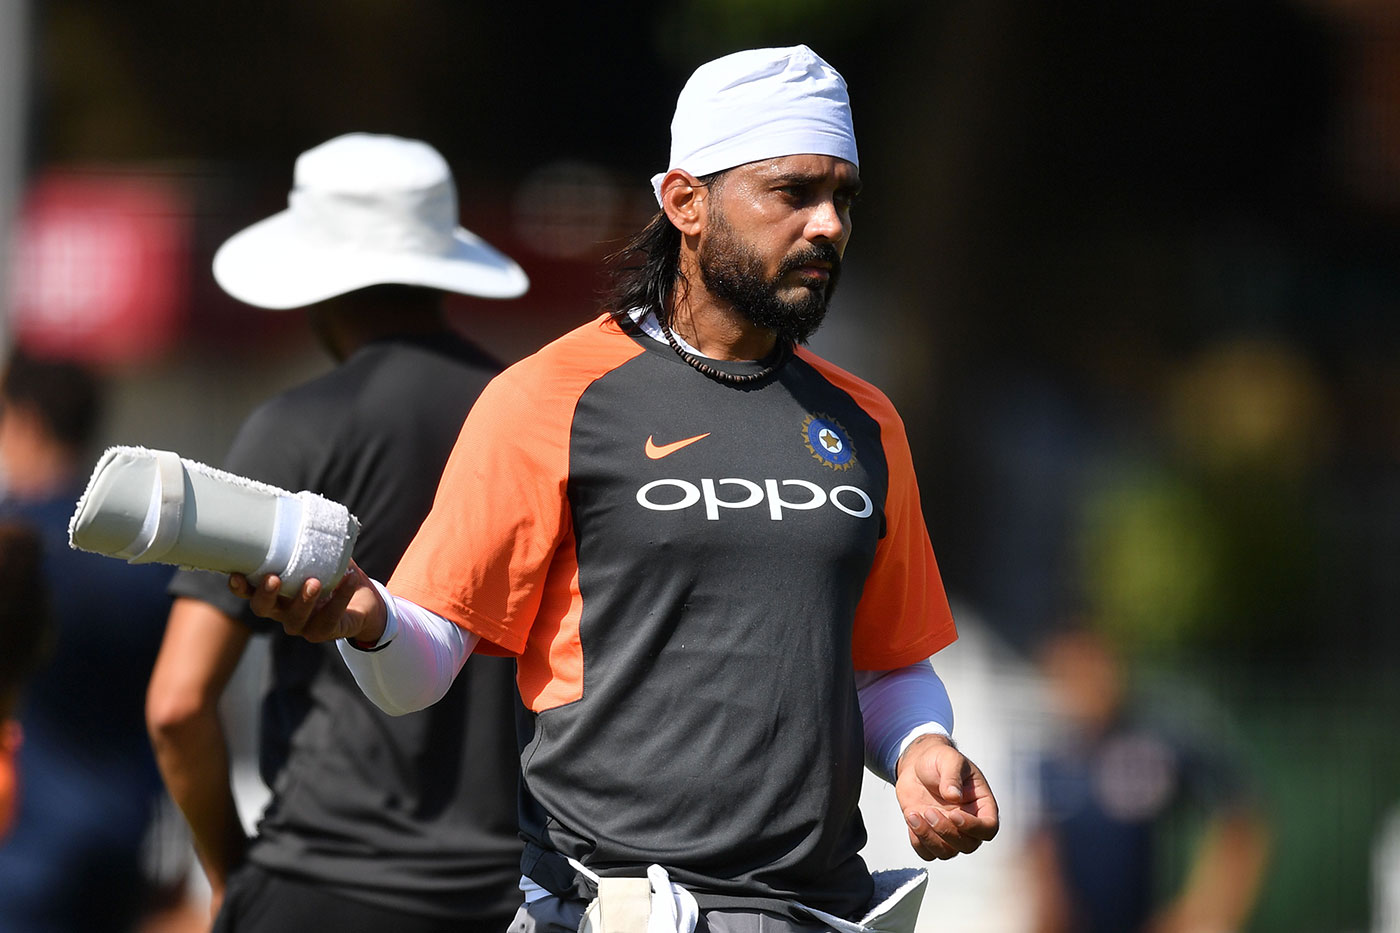 Sourav Ganguly Gives His Views On Murali Vijay's Lack Of Communication Claims With Selectors